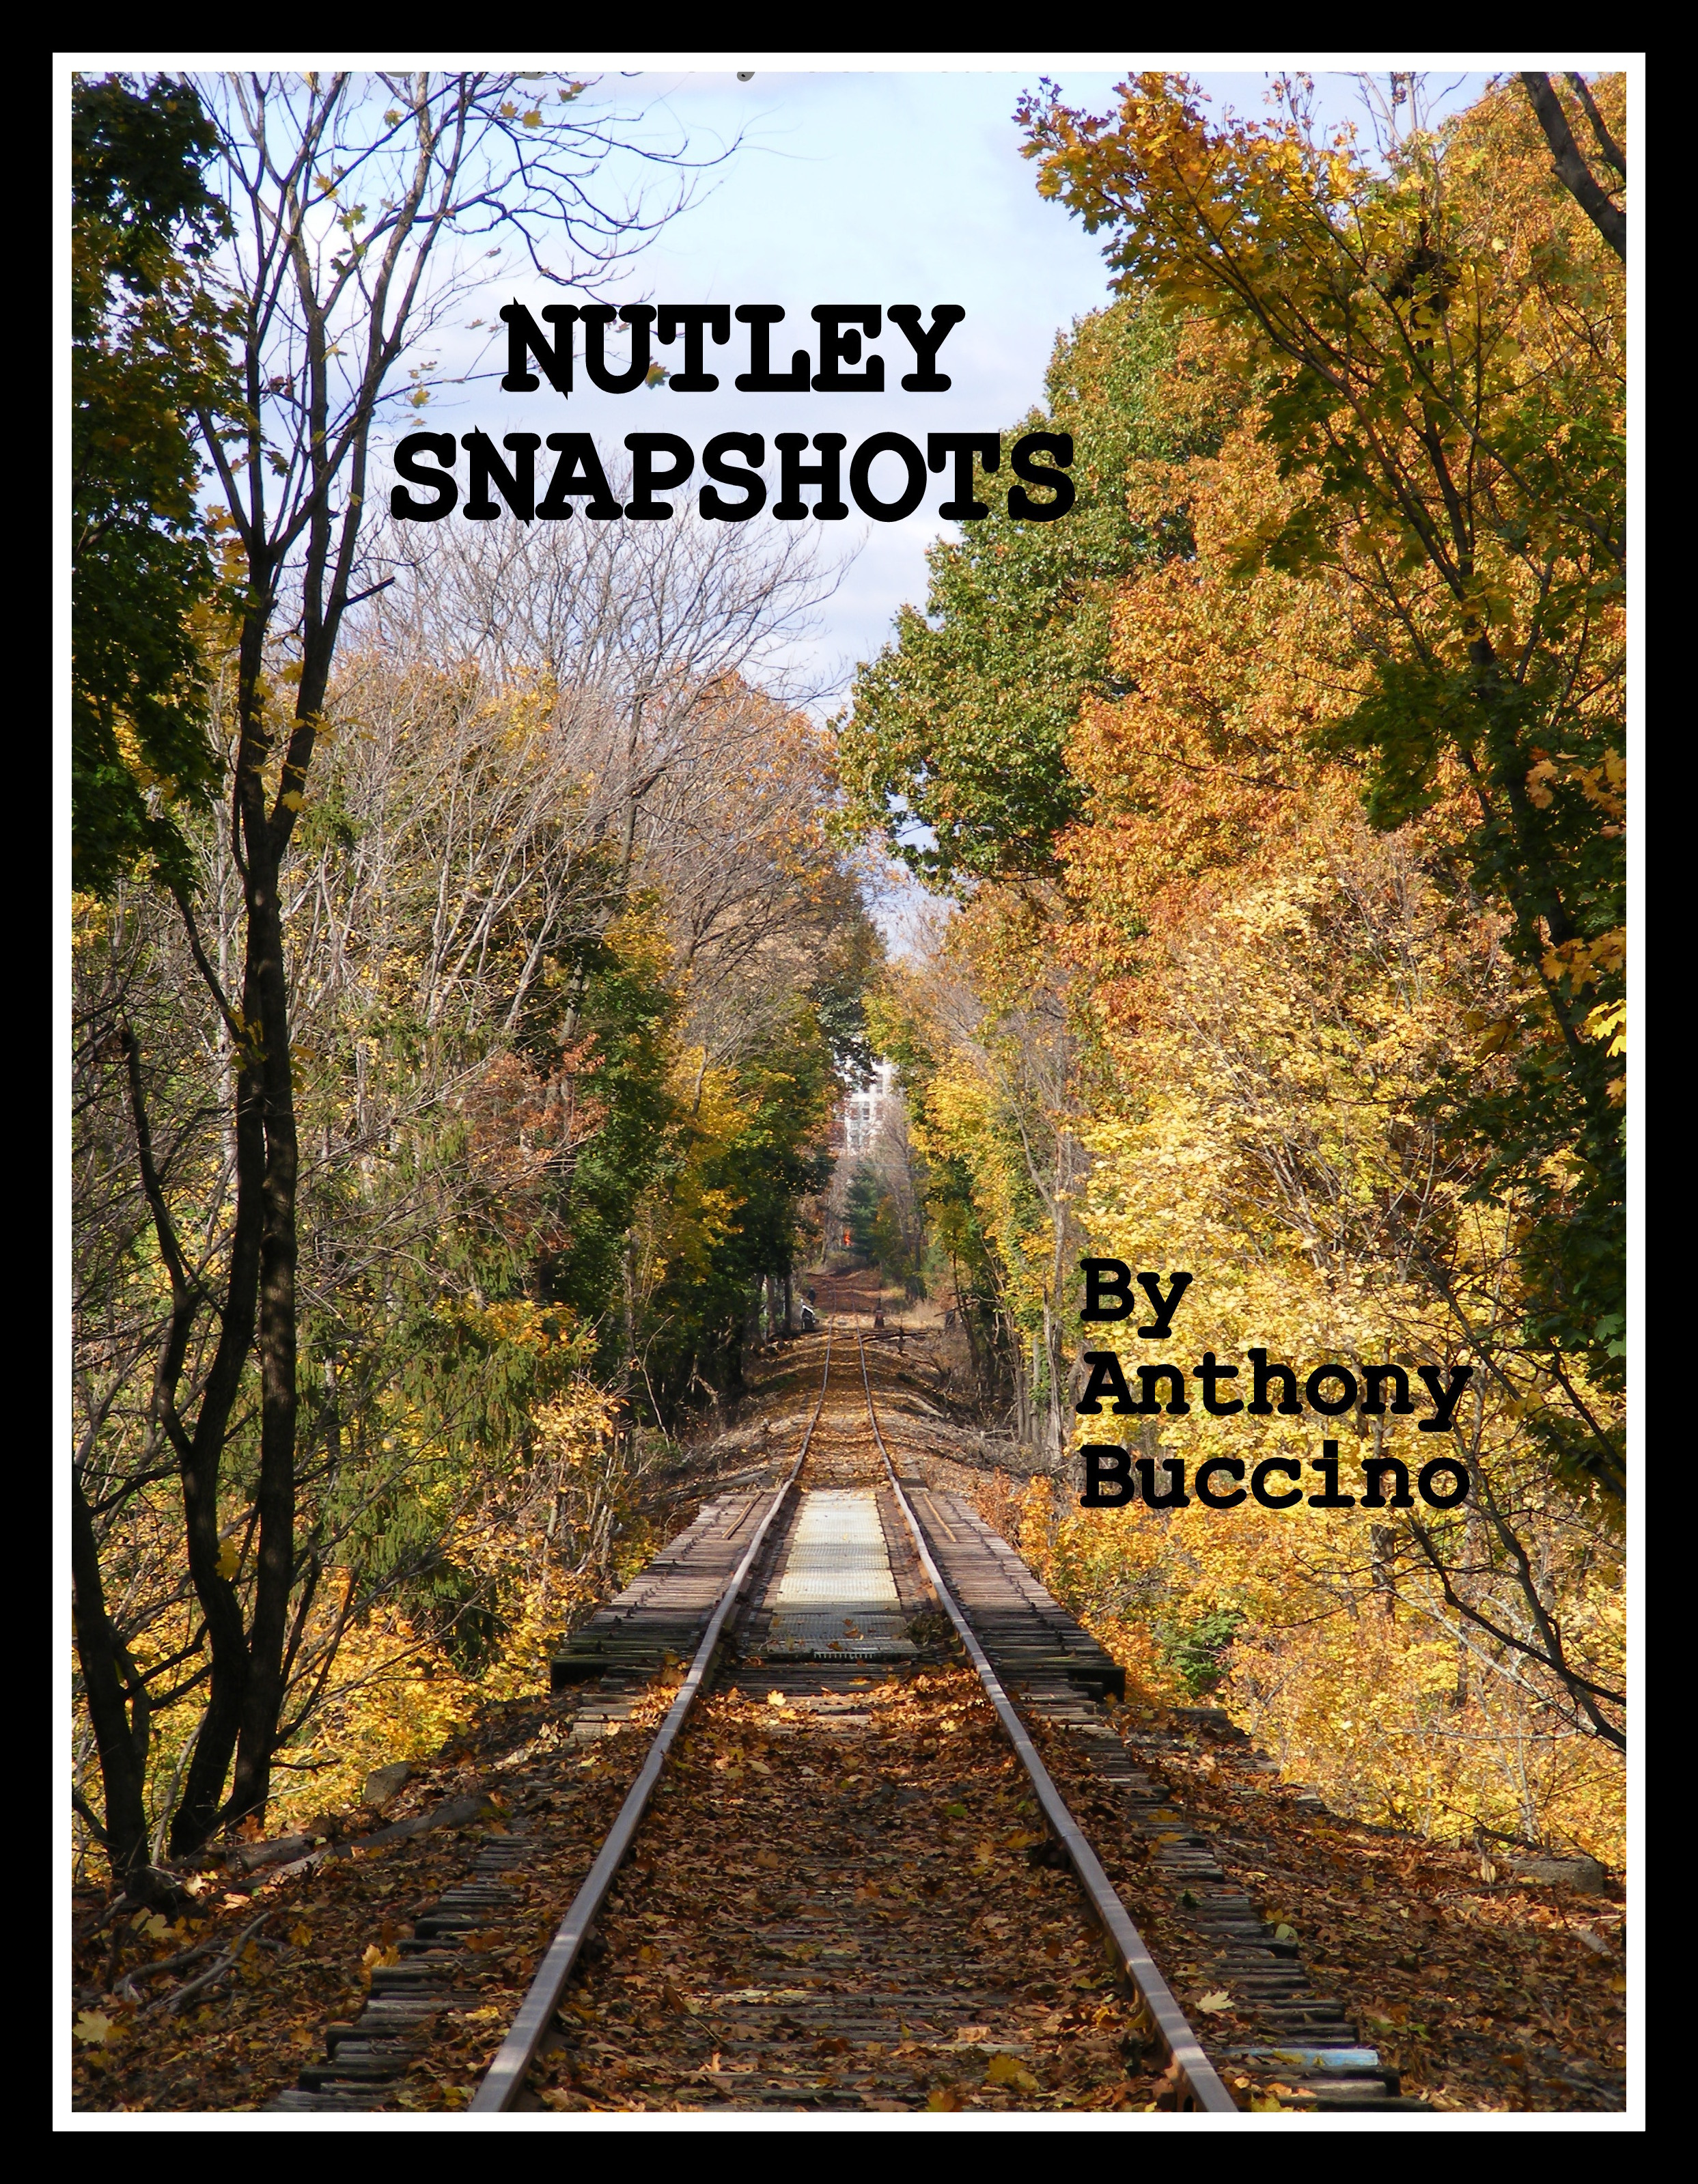 NUTLEY SNAPSHOTS In Plain View by Anthony Buccino - early cover